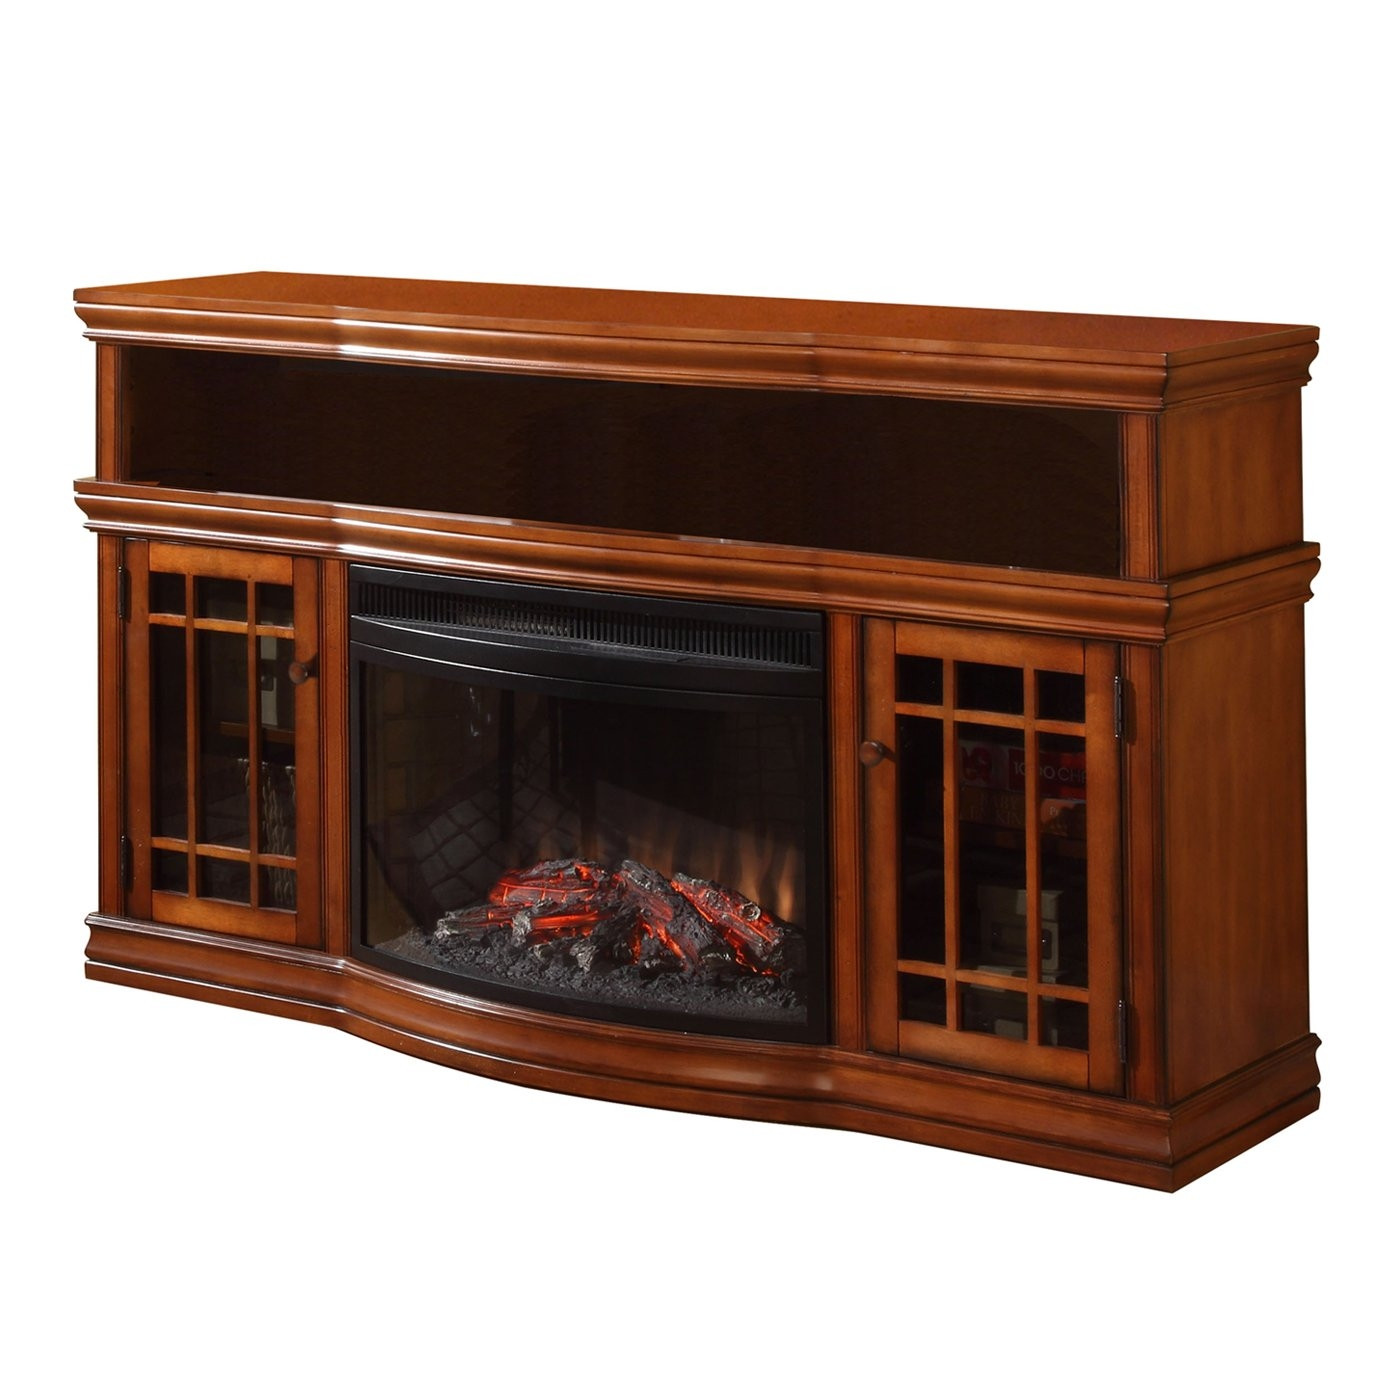 Best ideas about Home Depot Fireplace Tv Stand . Save or Pin 15 Home Depot Electric Fireplace Tv Stand pilation Now.